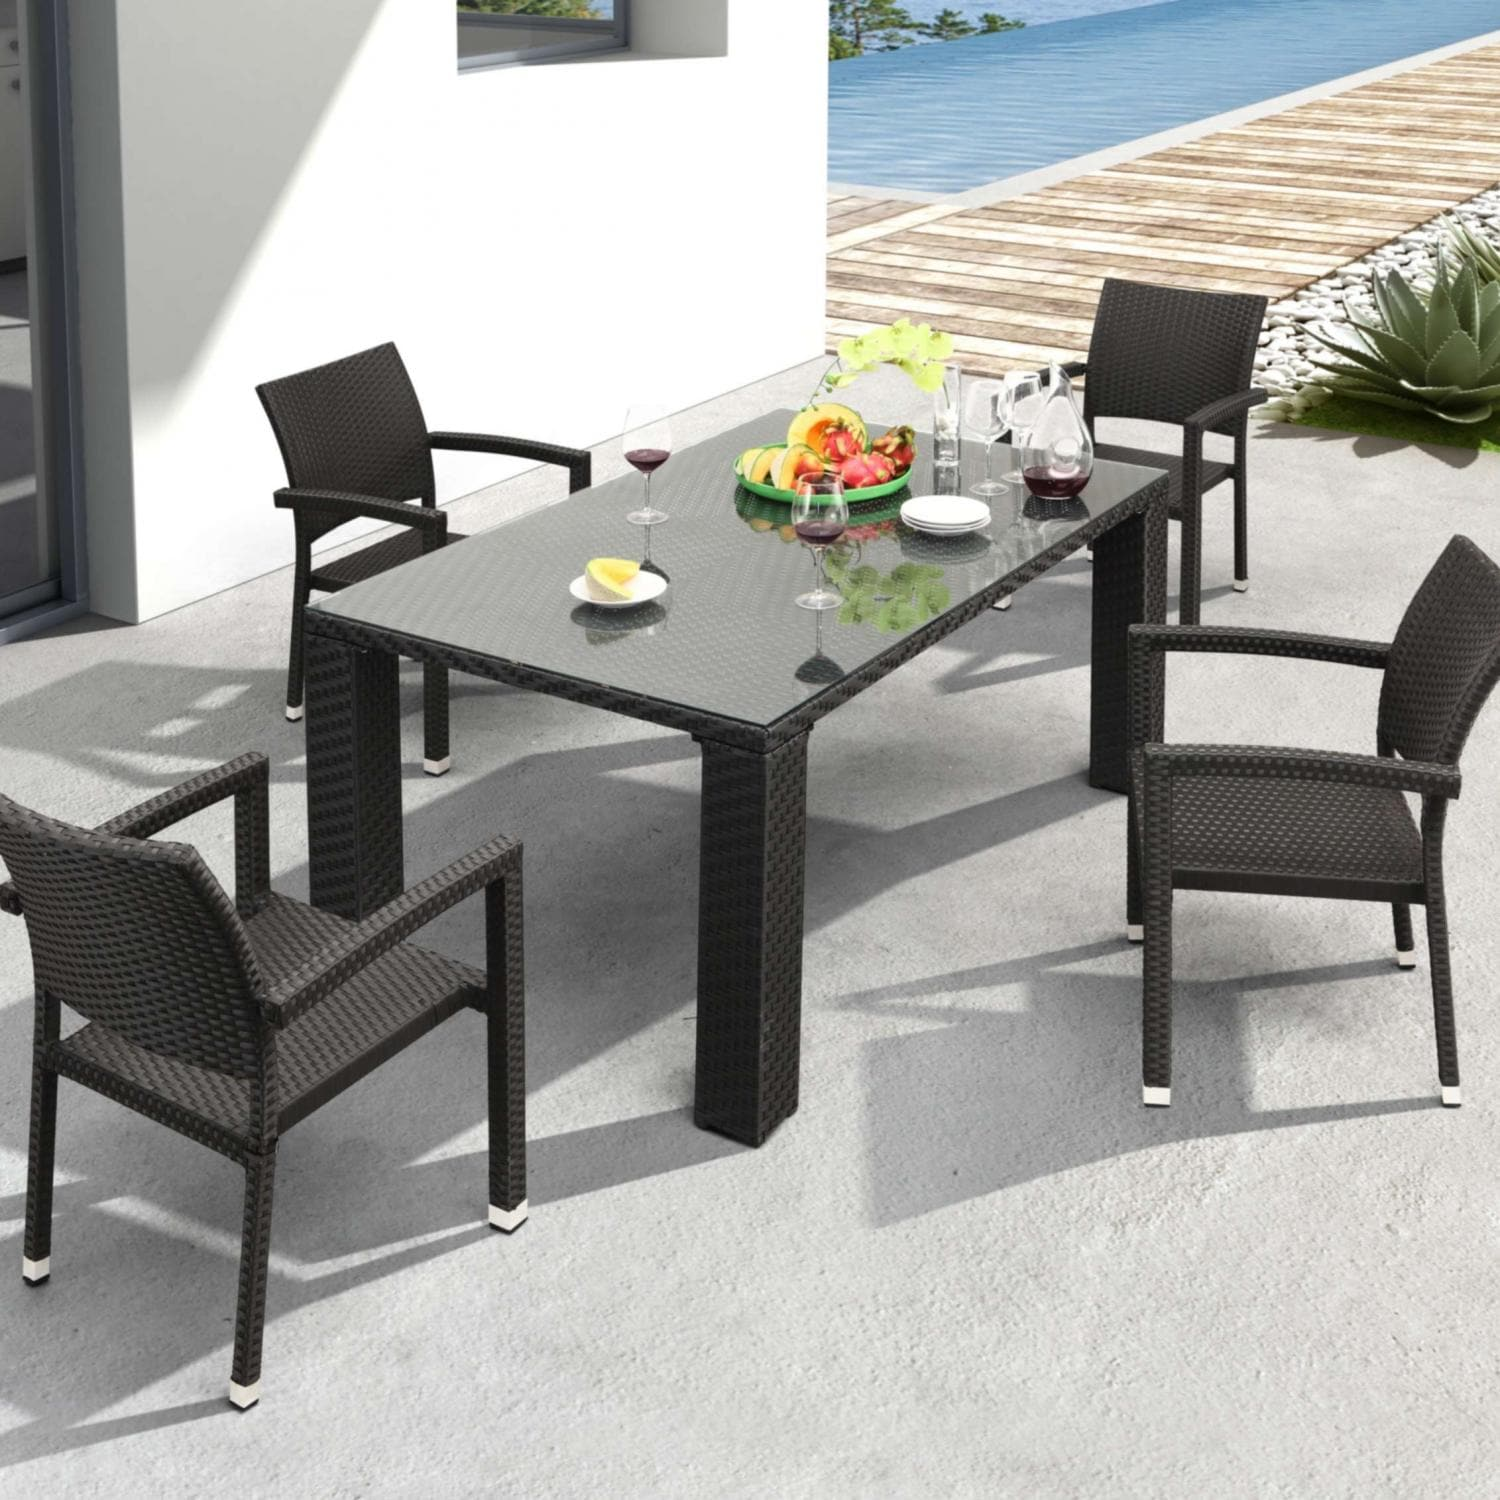 Captivating Zuo Modern Boracay Patio Dining Set With Glass Top Table   Seats 4 :  Ultimate Patio